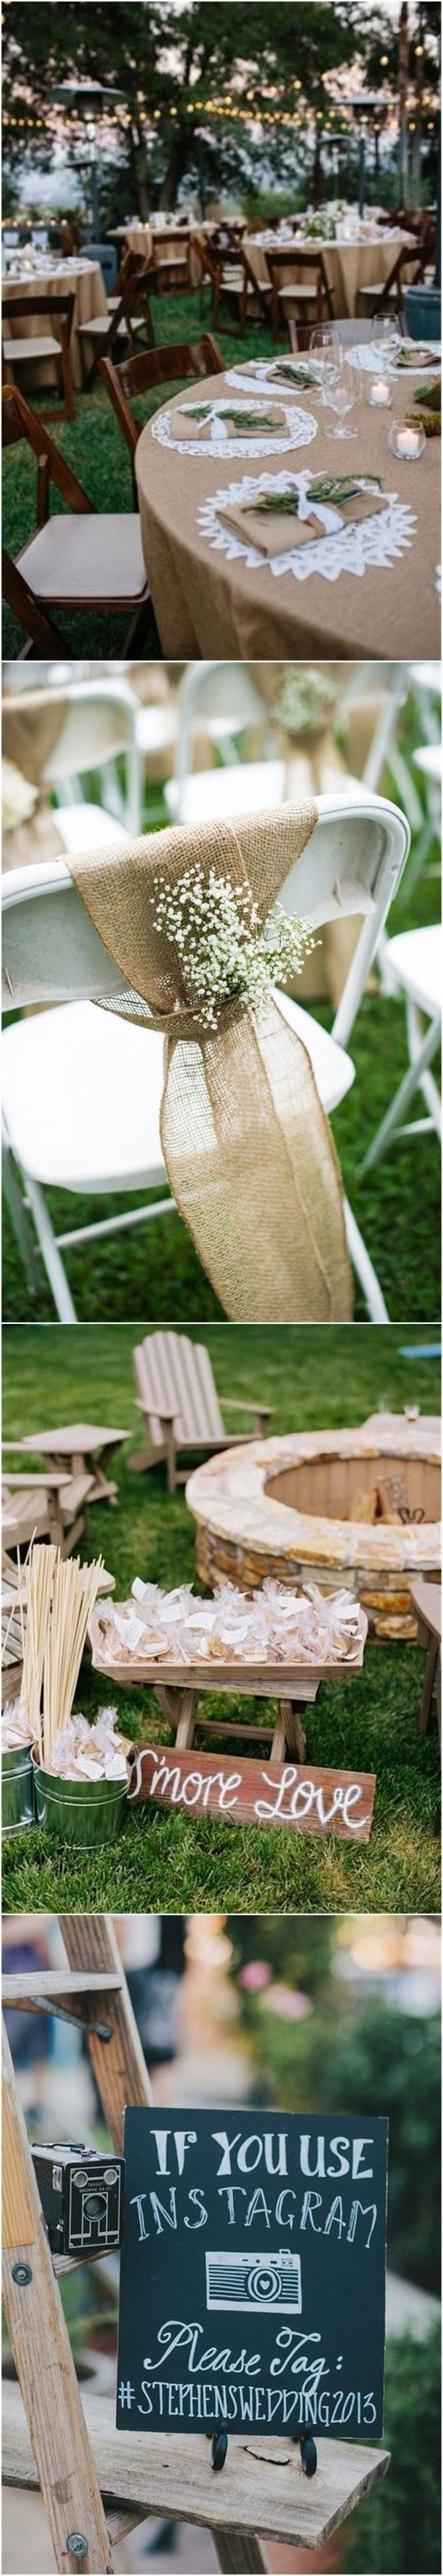 Wedding Decorations » 22 Rustic Backyard Wedding Decoration Ideas on A Budget » ❤️ More: http://www.weddinginclude.com/2017/08/rustic-backyard-wedding-decoration-ideas-on-a-budget/ #budgetweddingdecorations #weddingplanningonabudget